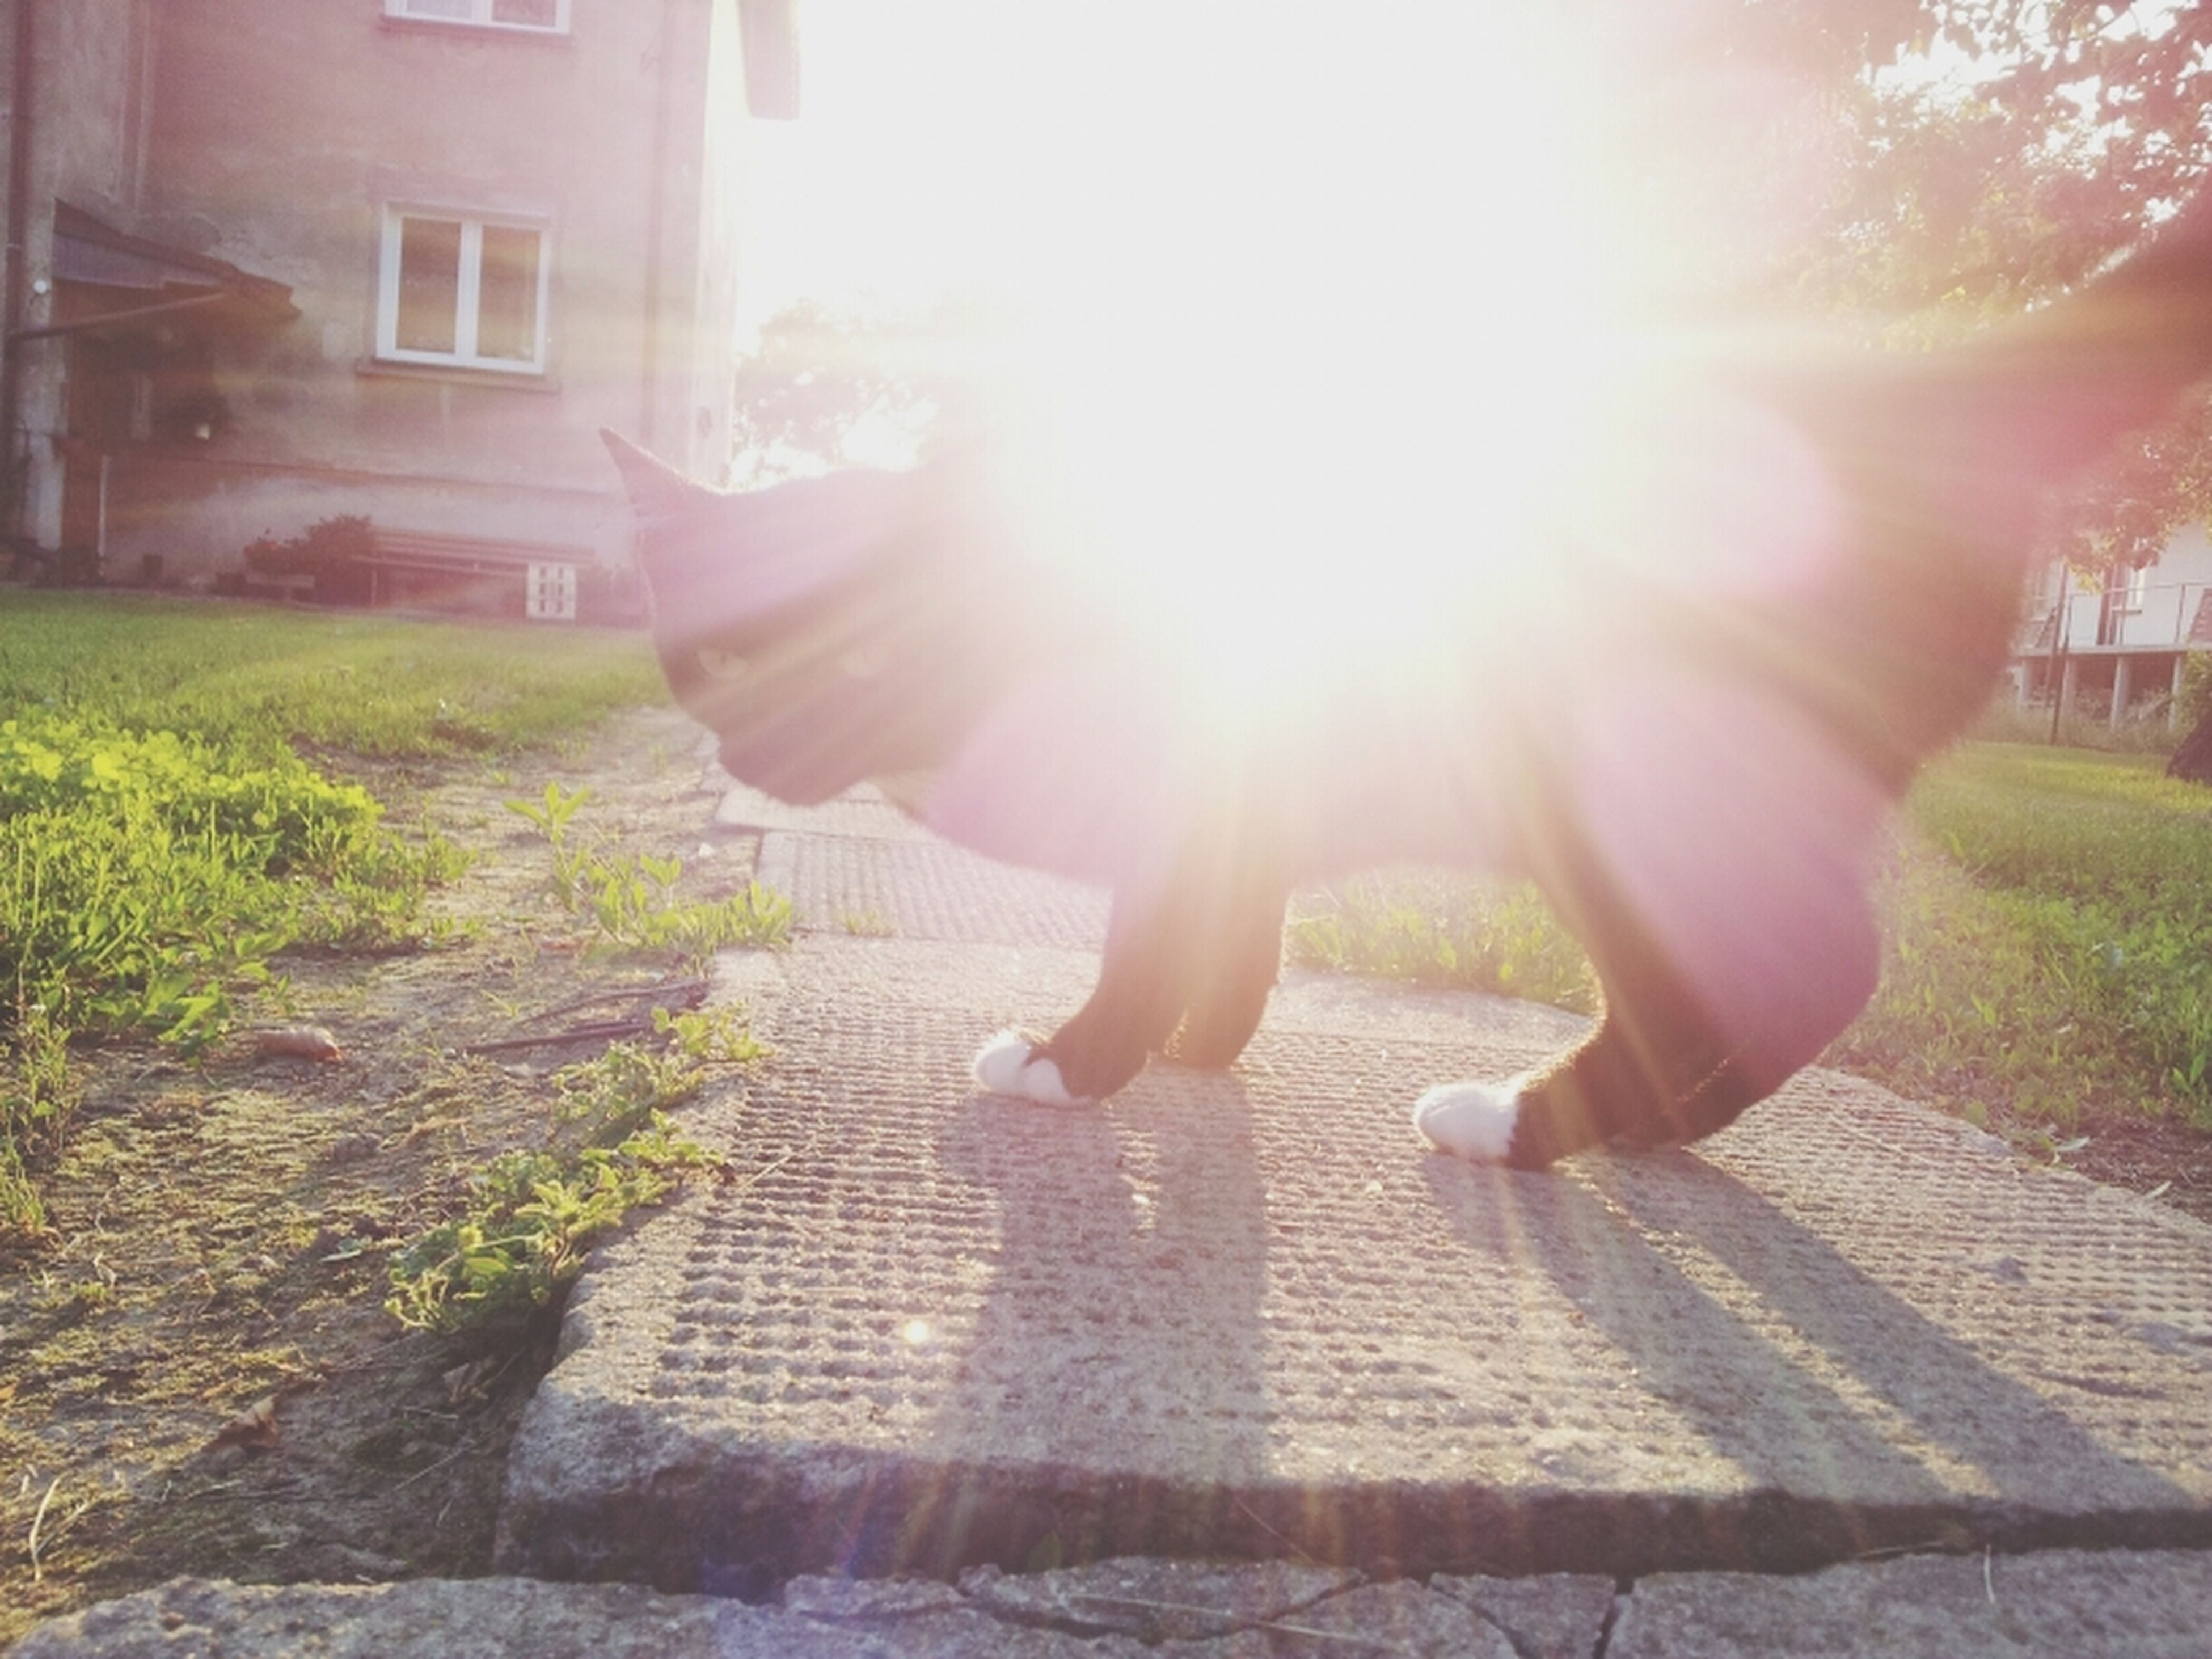 sun, sunbeam, sunlight, lens flare, architecture, building exterior, built structure, full length, sunny, lifestyles, leisure activity, tree, shadow, bright, day, grass, person, walking